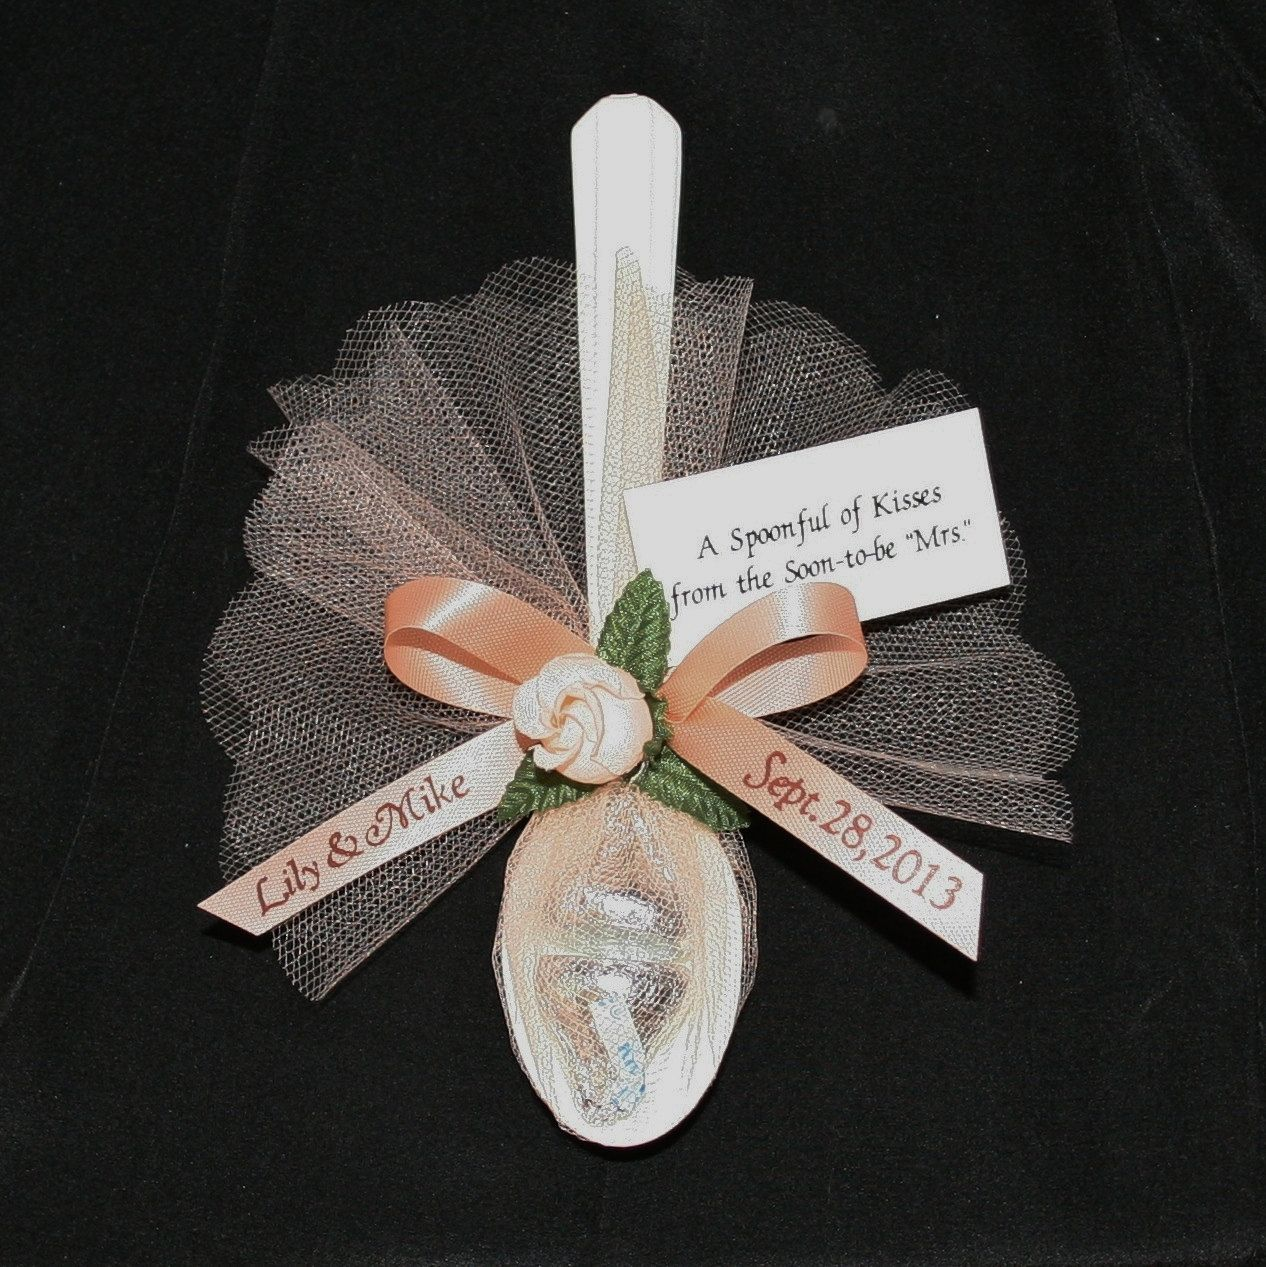 Wedding Rehearsal Dinner Gifts: Bridal Shower Favors With Kisses